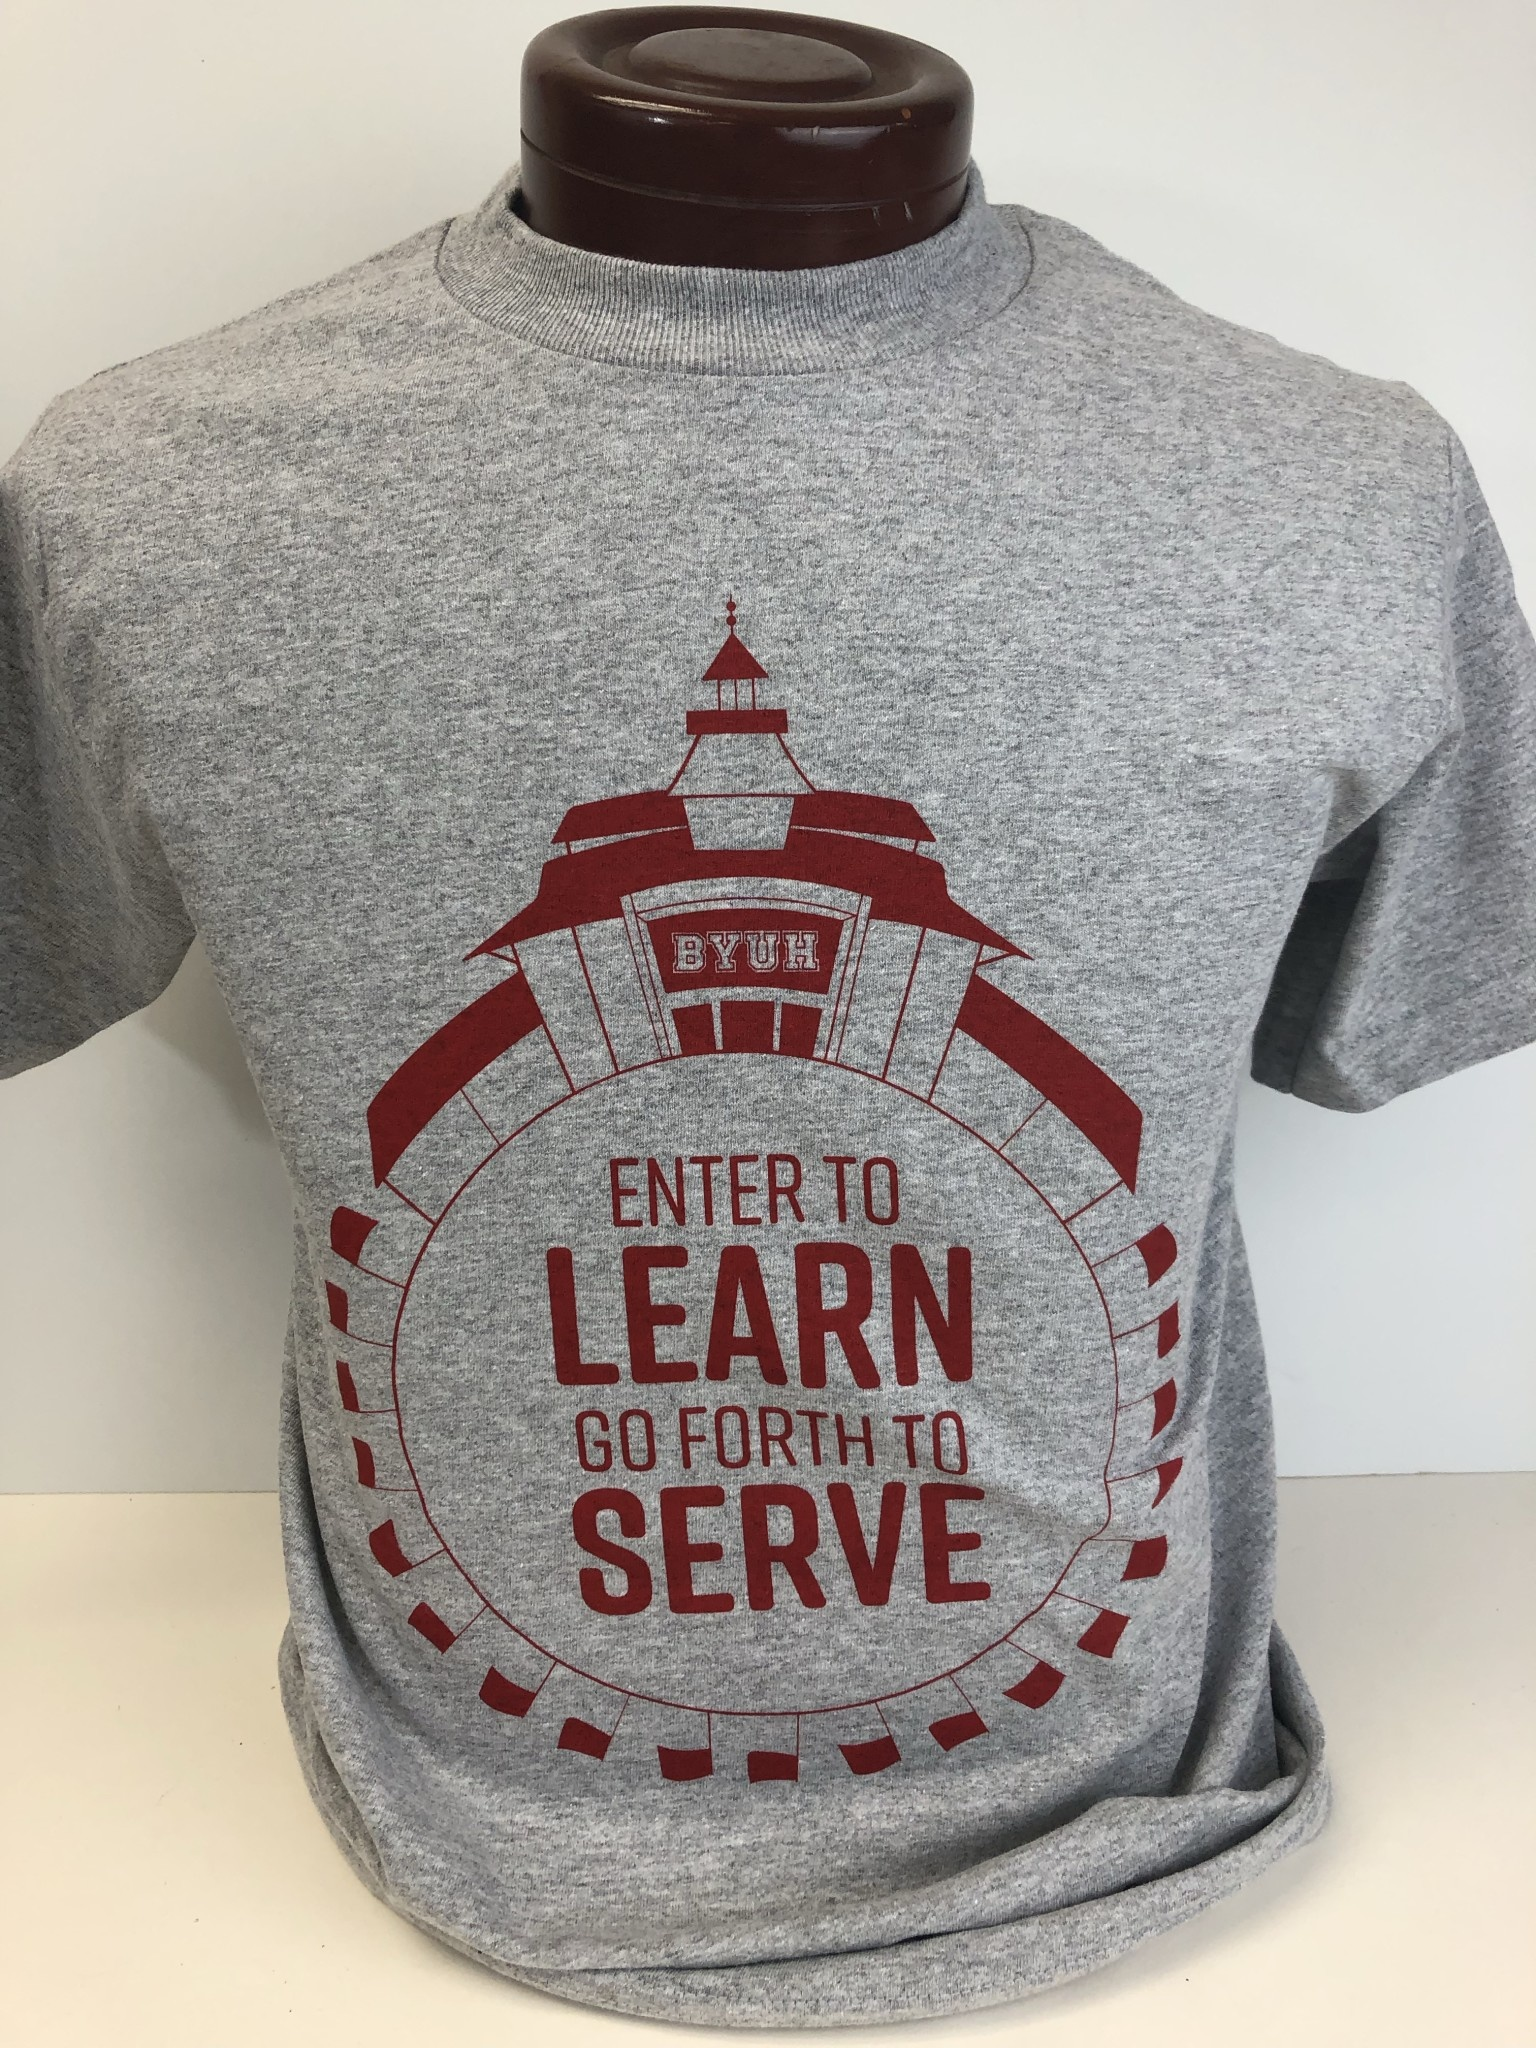 Enter to Learn Tee shirt